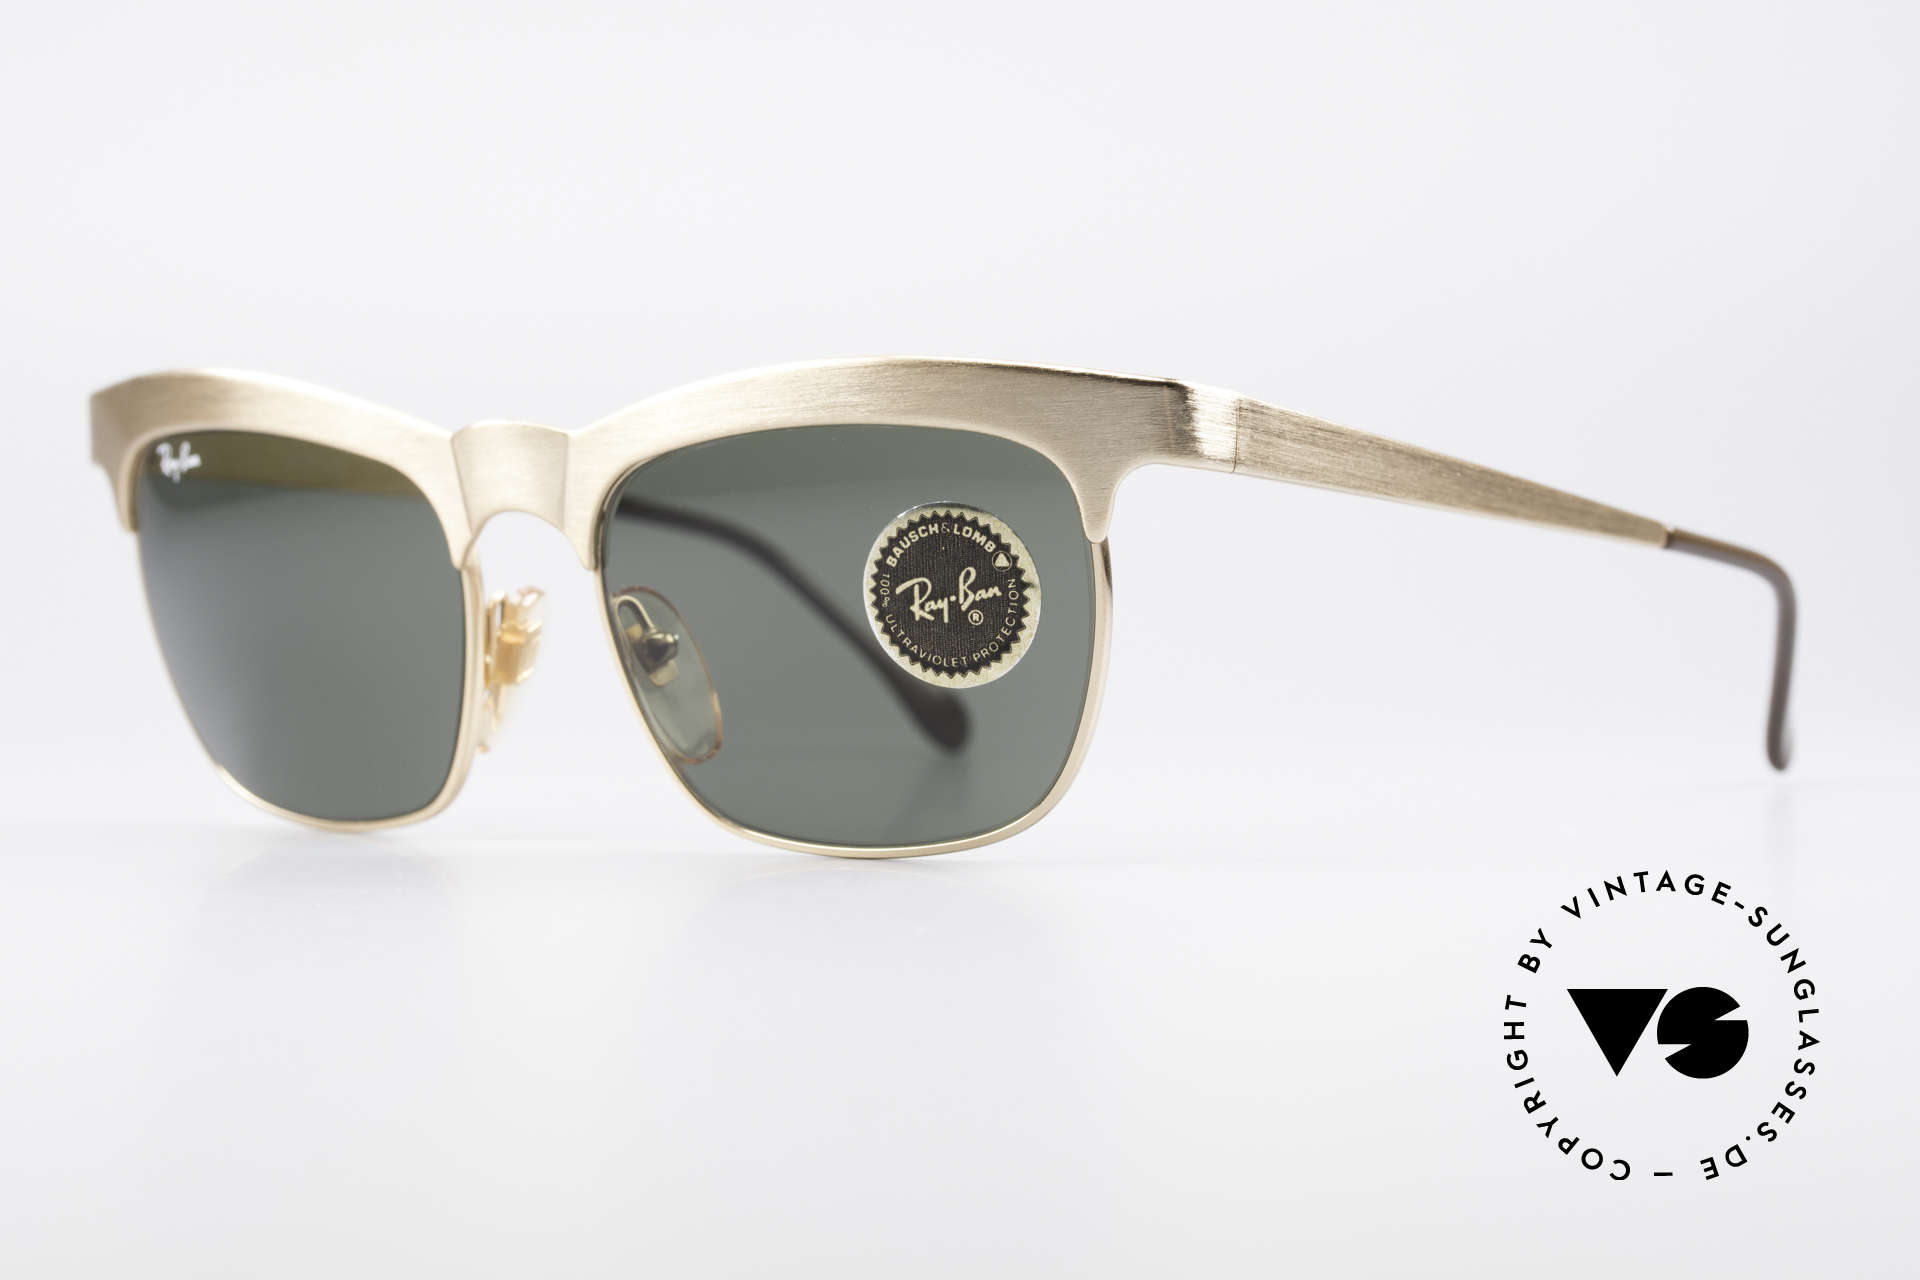 Ray Ban Nuevo 90's B&L Sunglasses W0755, impressive quality (built to last); B&L lenses!, Made for Men and Women